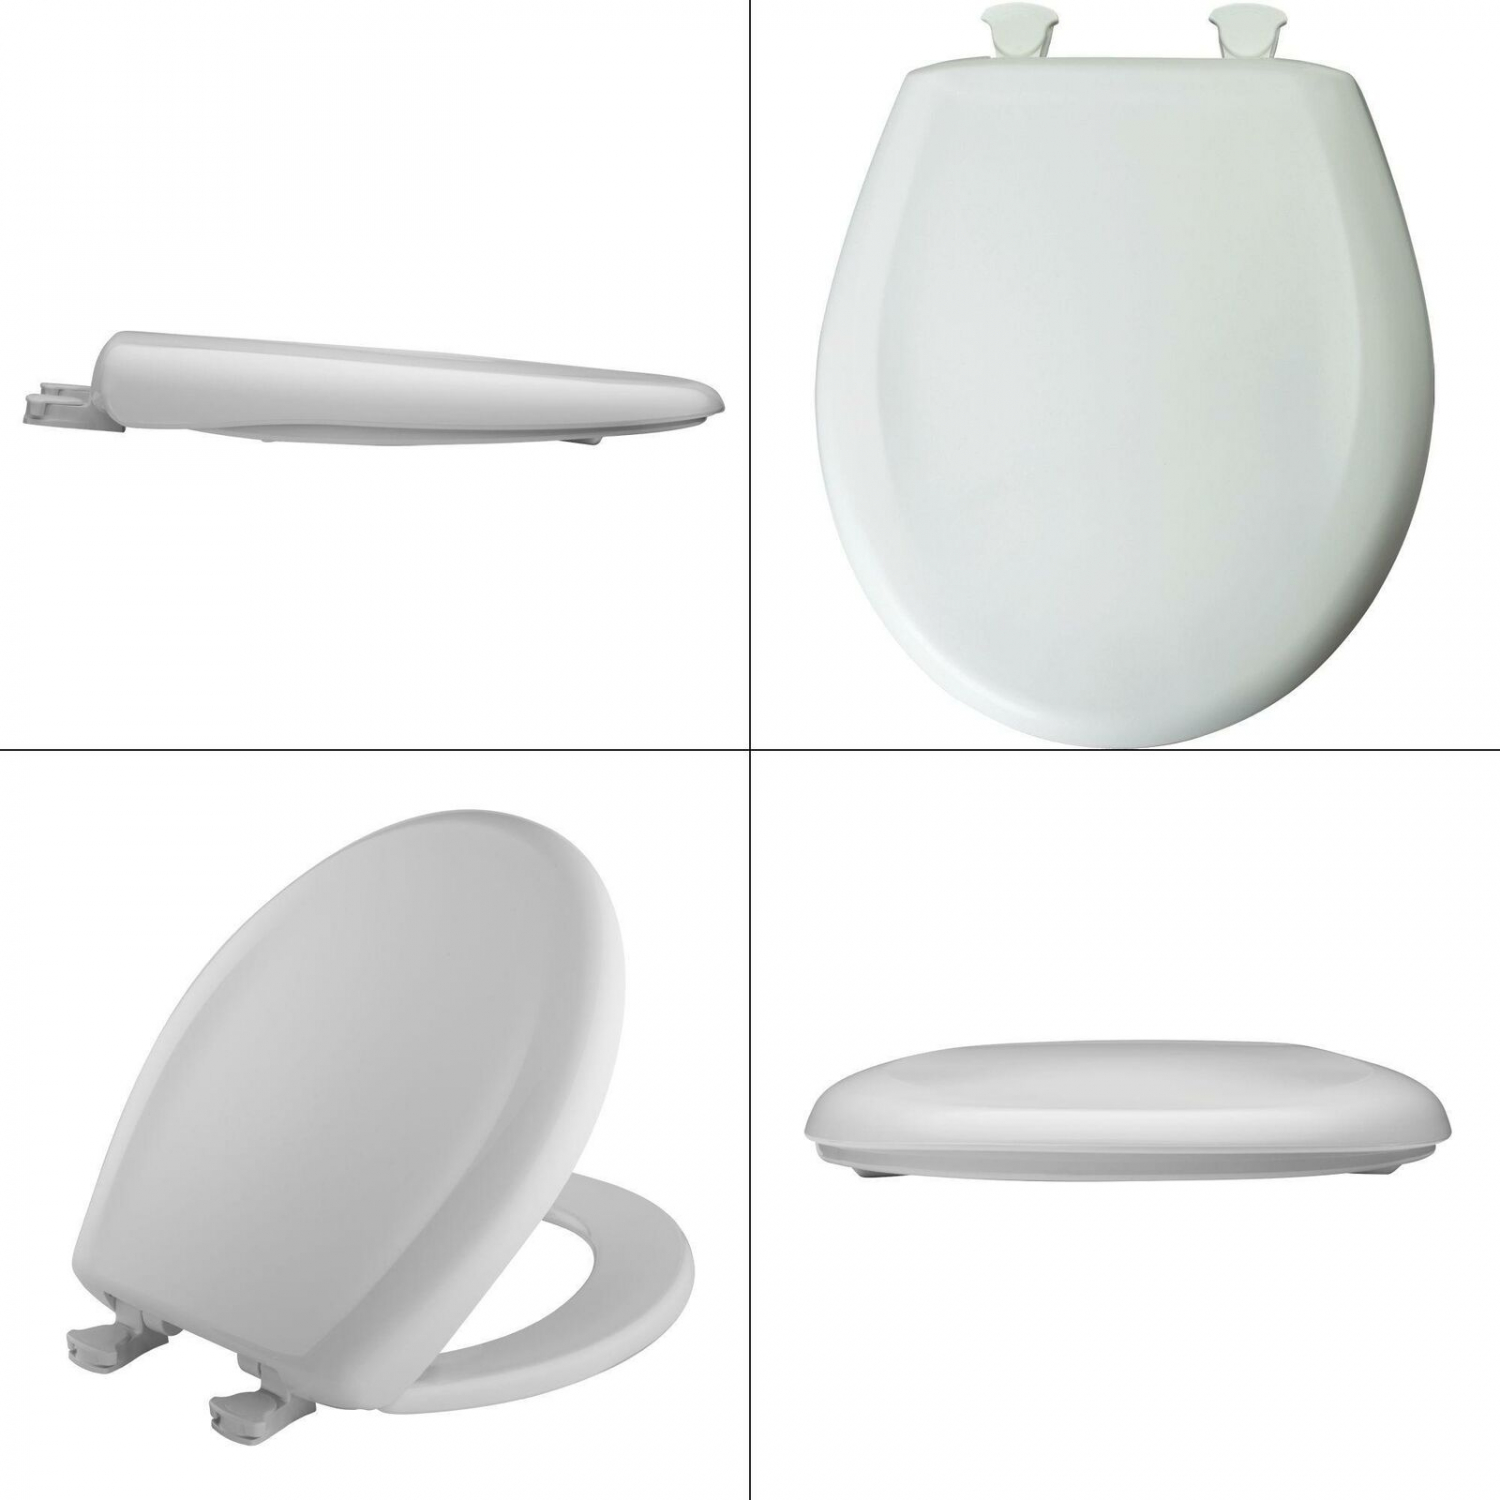 Easy Bemis 200SLOWT Round Closed-Front Toilet Seat and Lid with Whisper-Close®